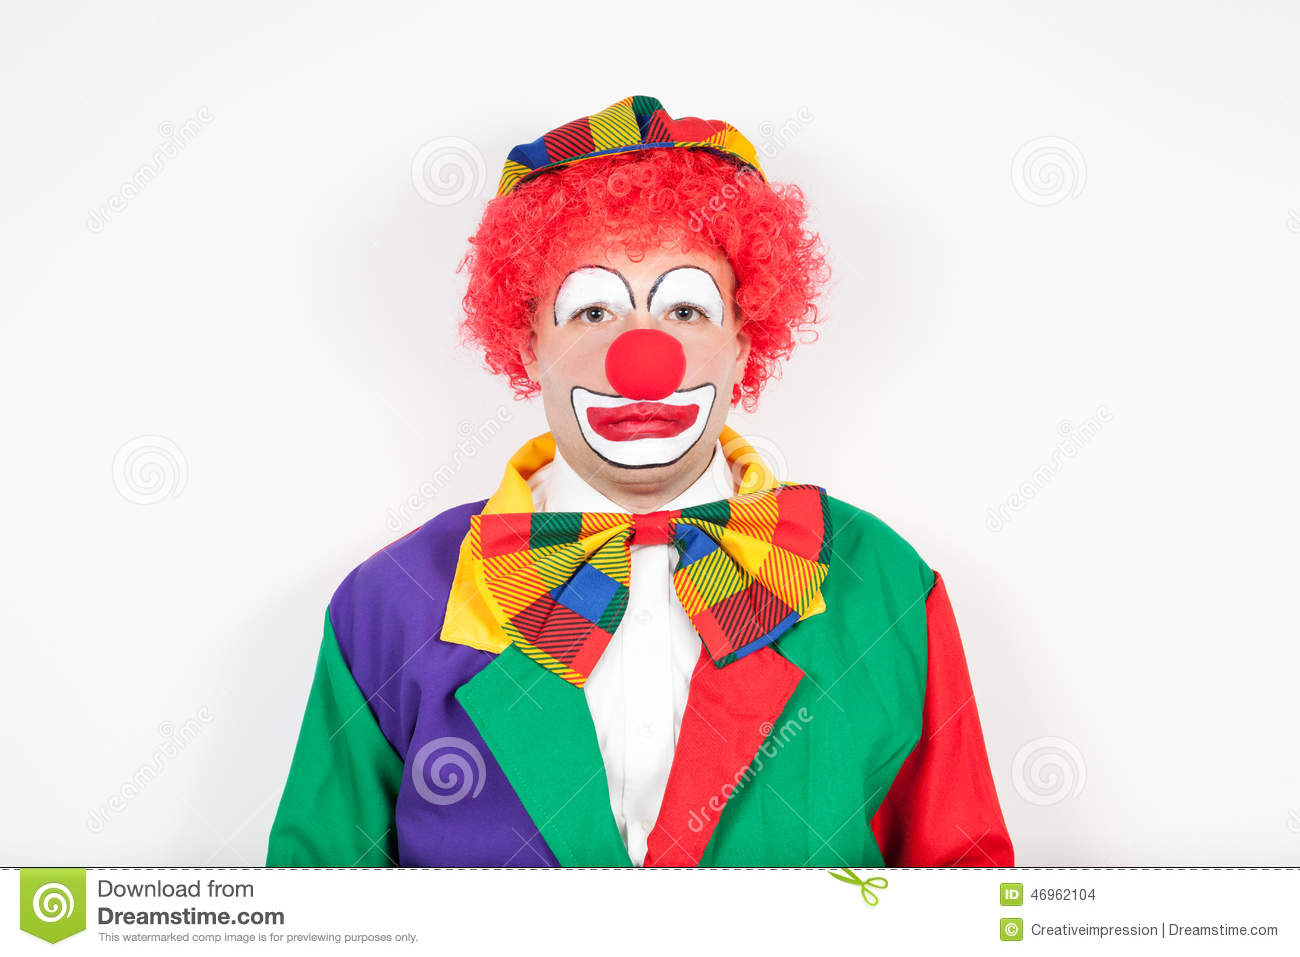 Clown avec le visage neutre